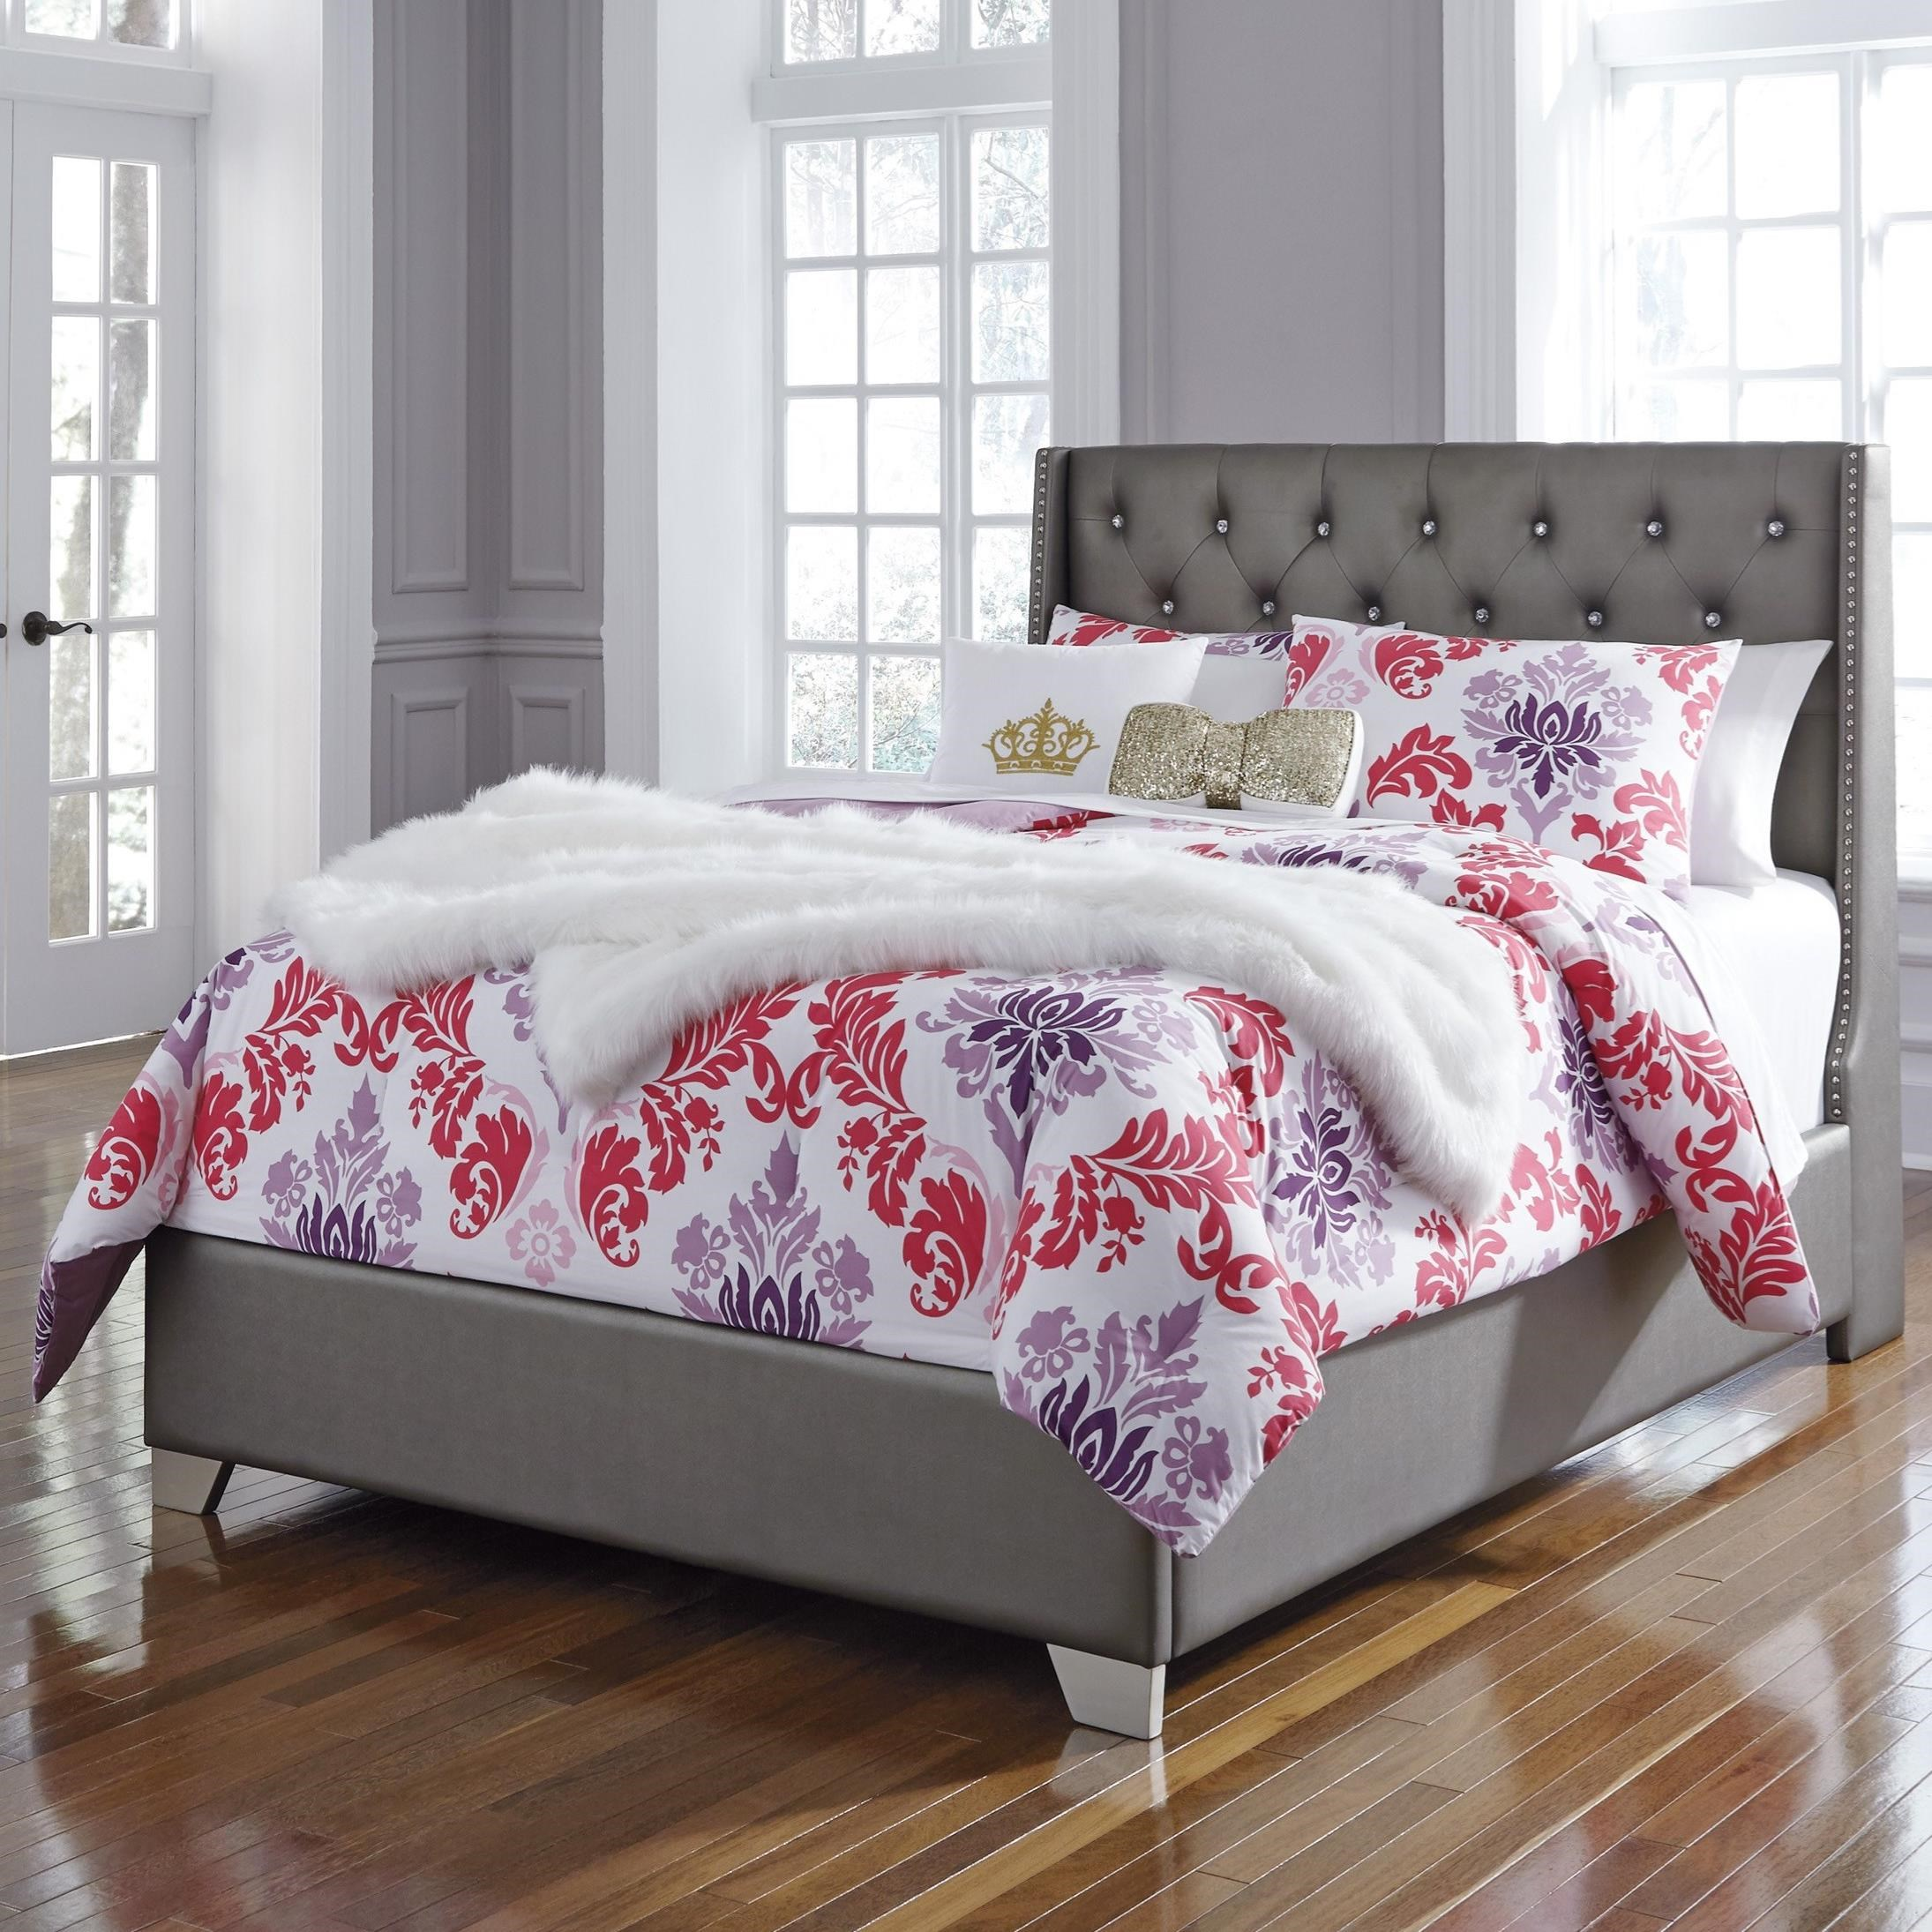 Signature Design By Ashley Coralayne Full Upholstered Bed With Tall Headboard With Faux Crystal